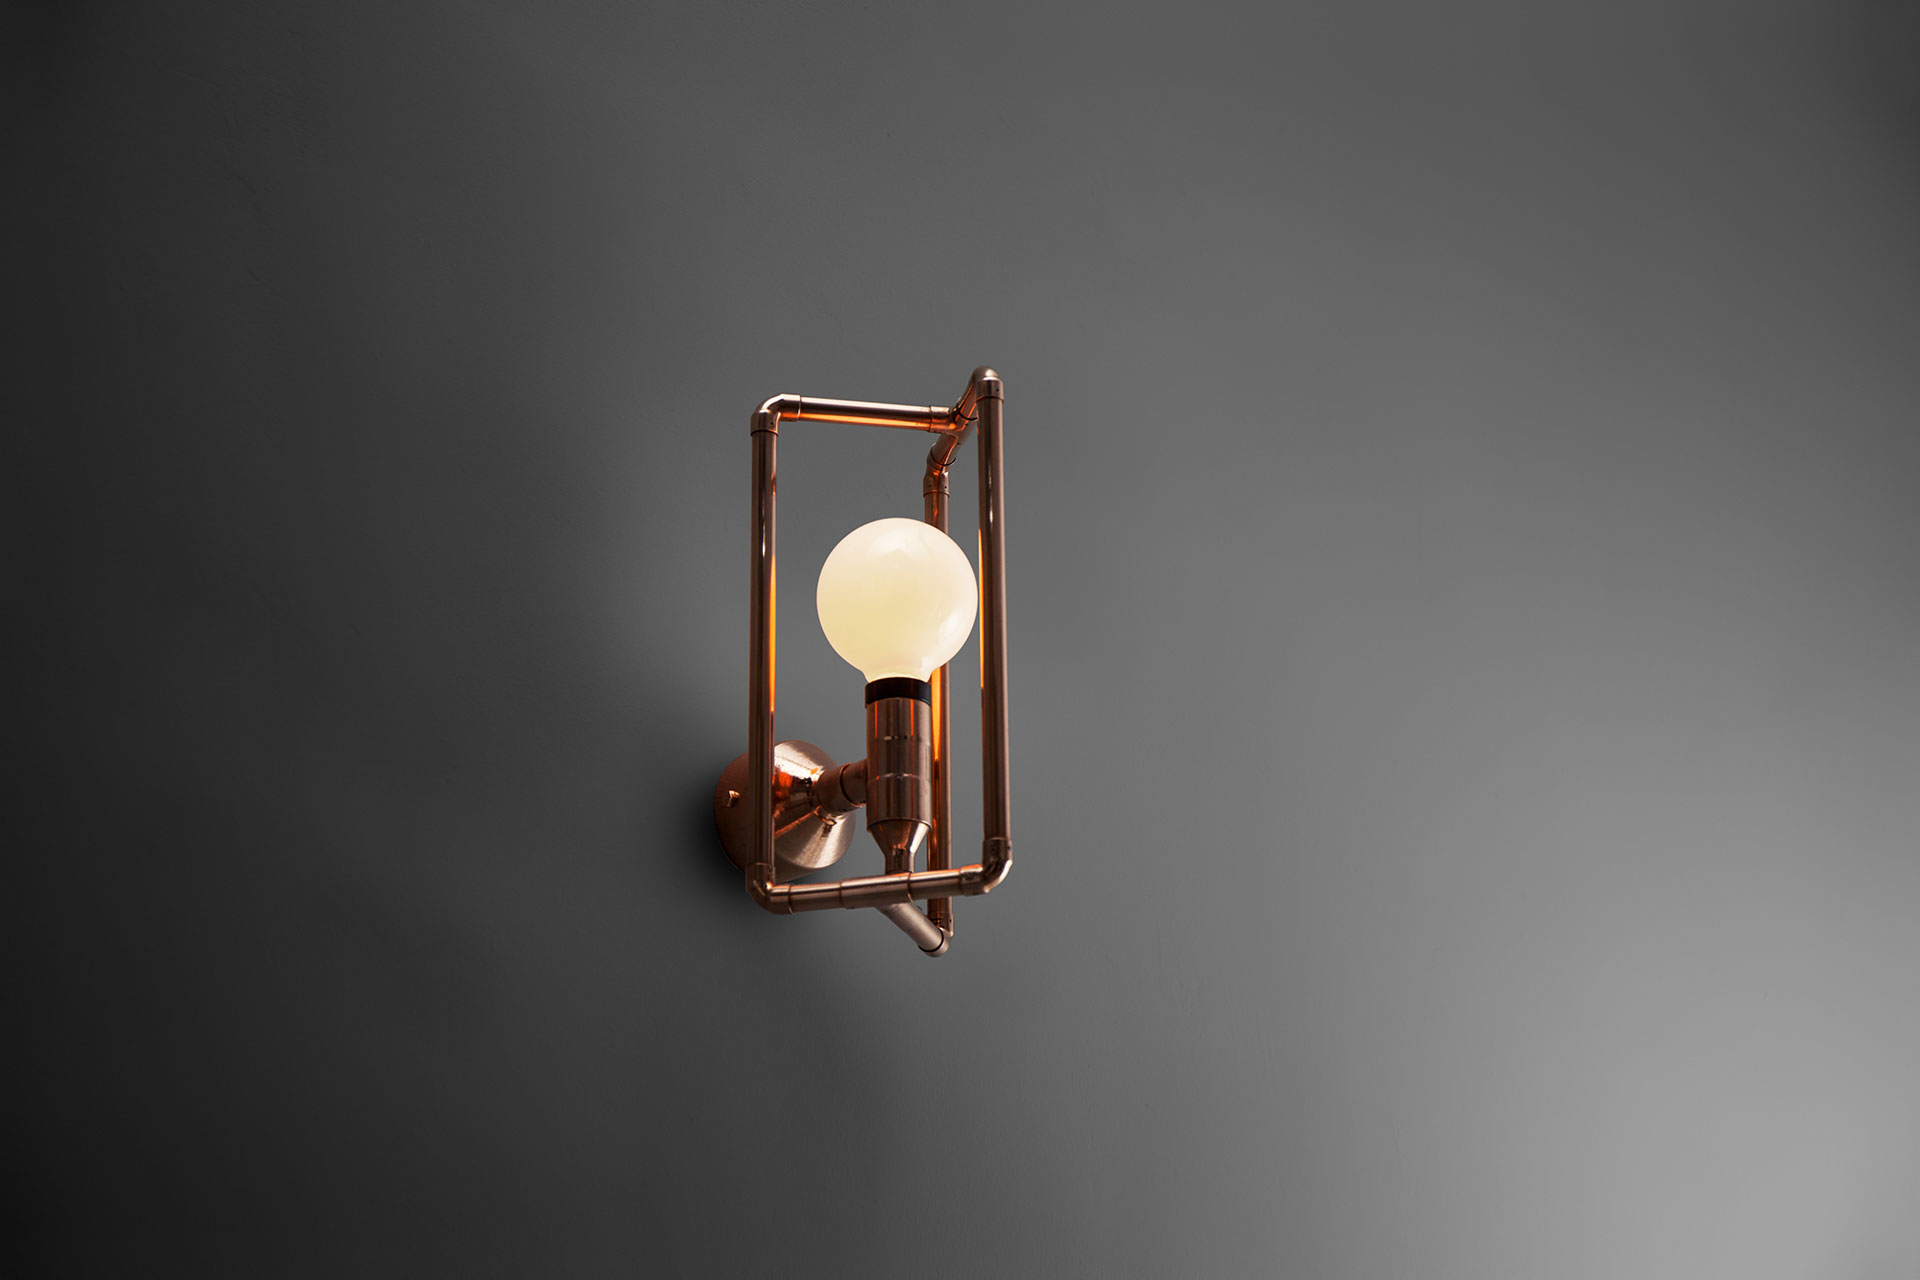 Modern design sconce in brass or copper inspired by industrial style